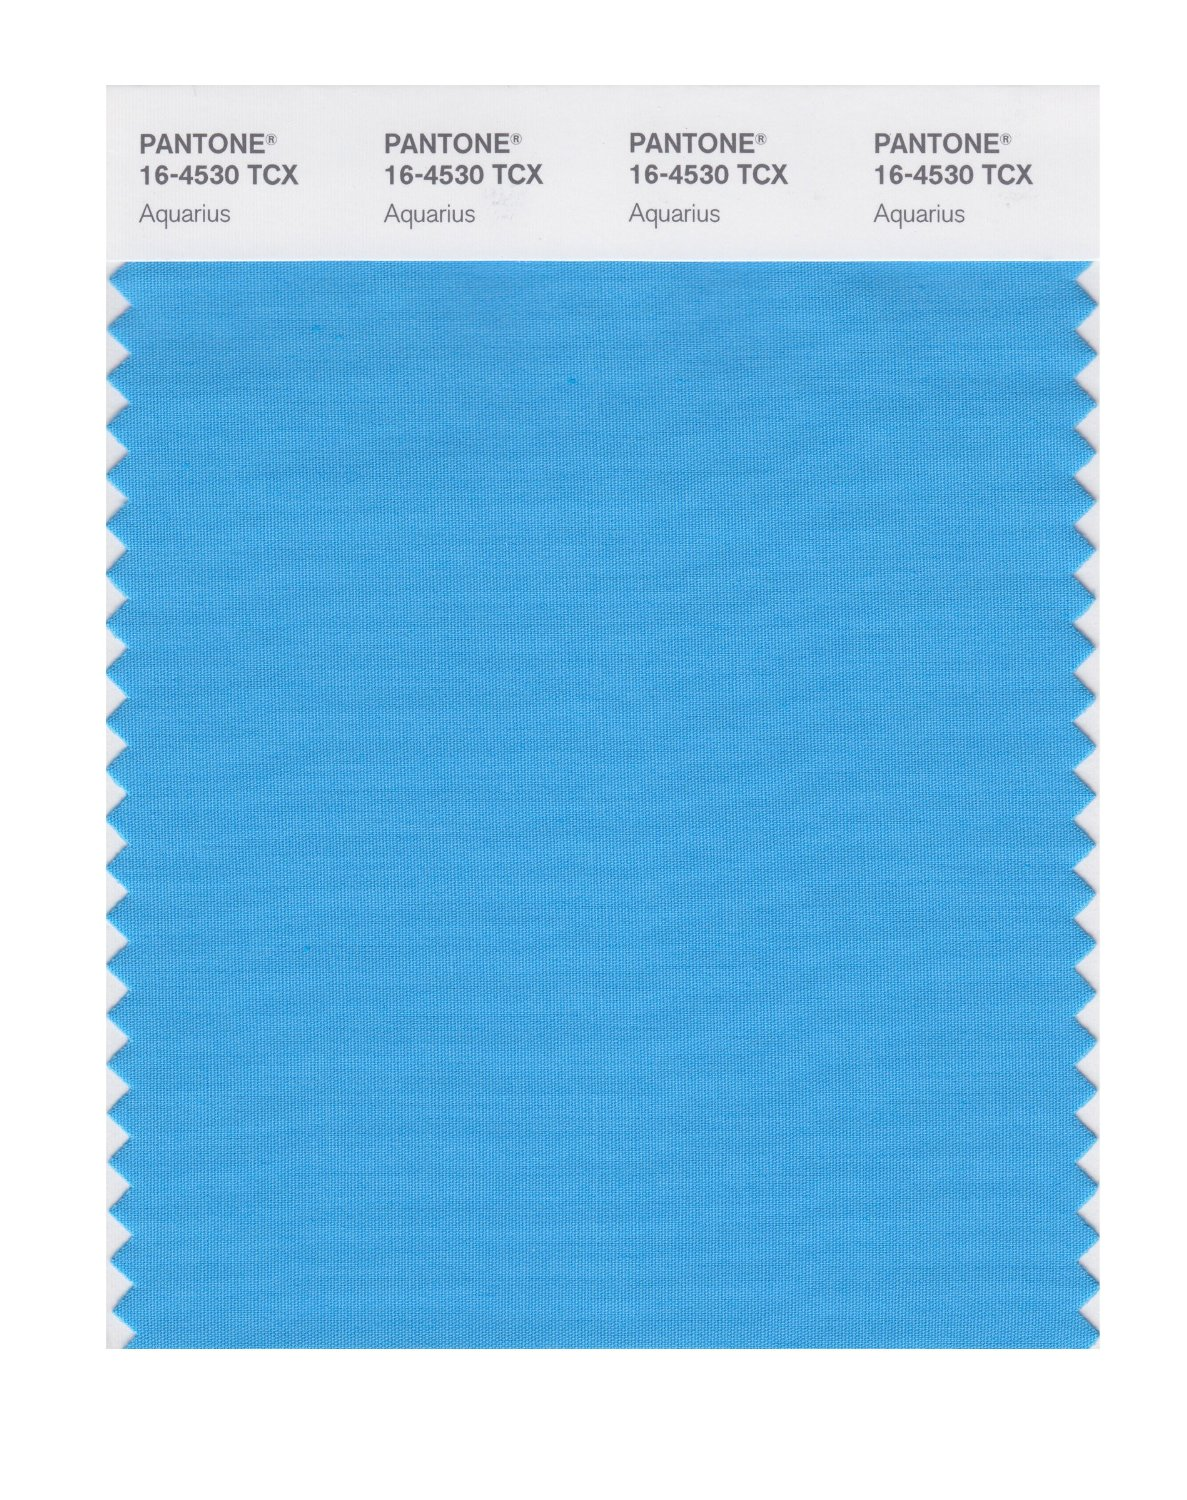 Pantone Smart Swatch 16-4530 Aquarius